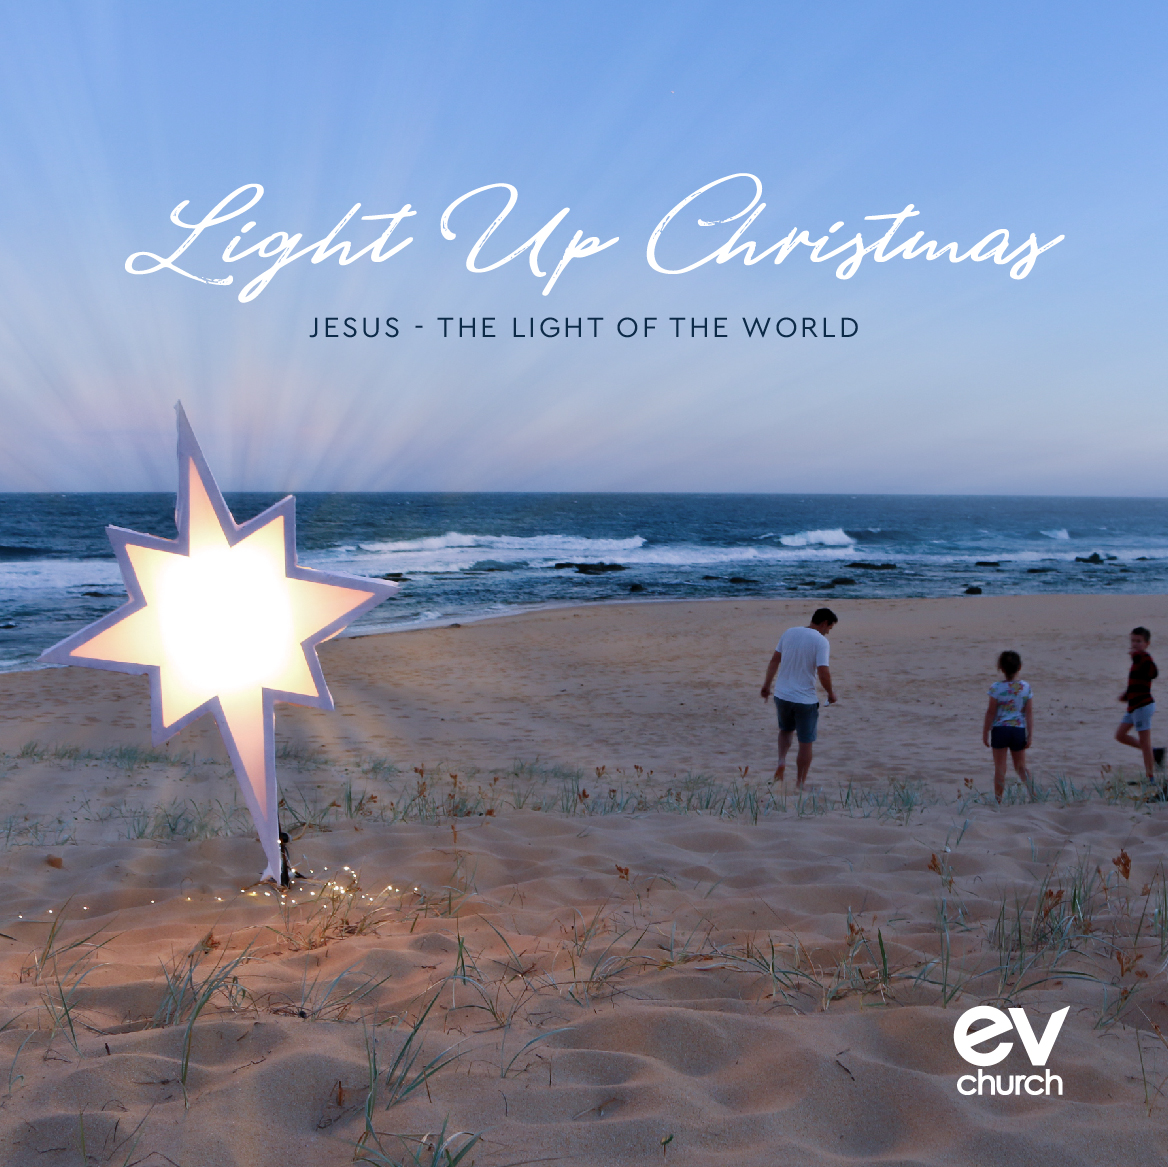 Light Up Christmas - Jesus Light of the World